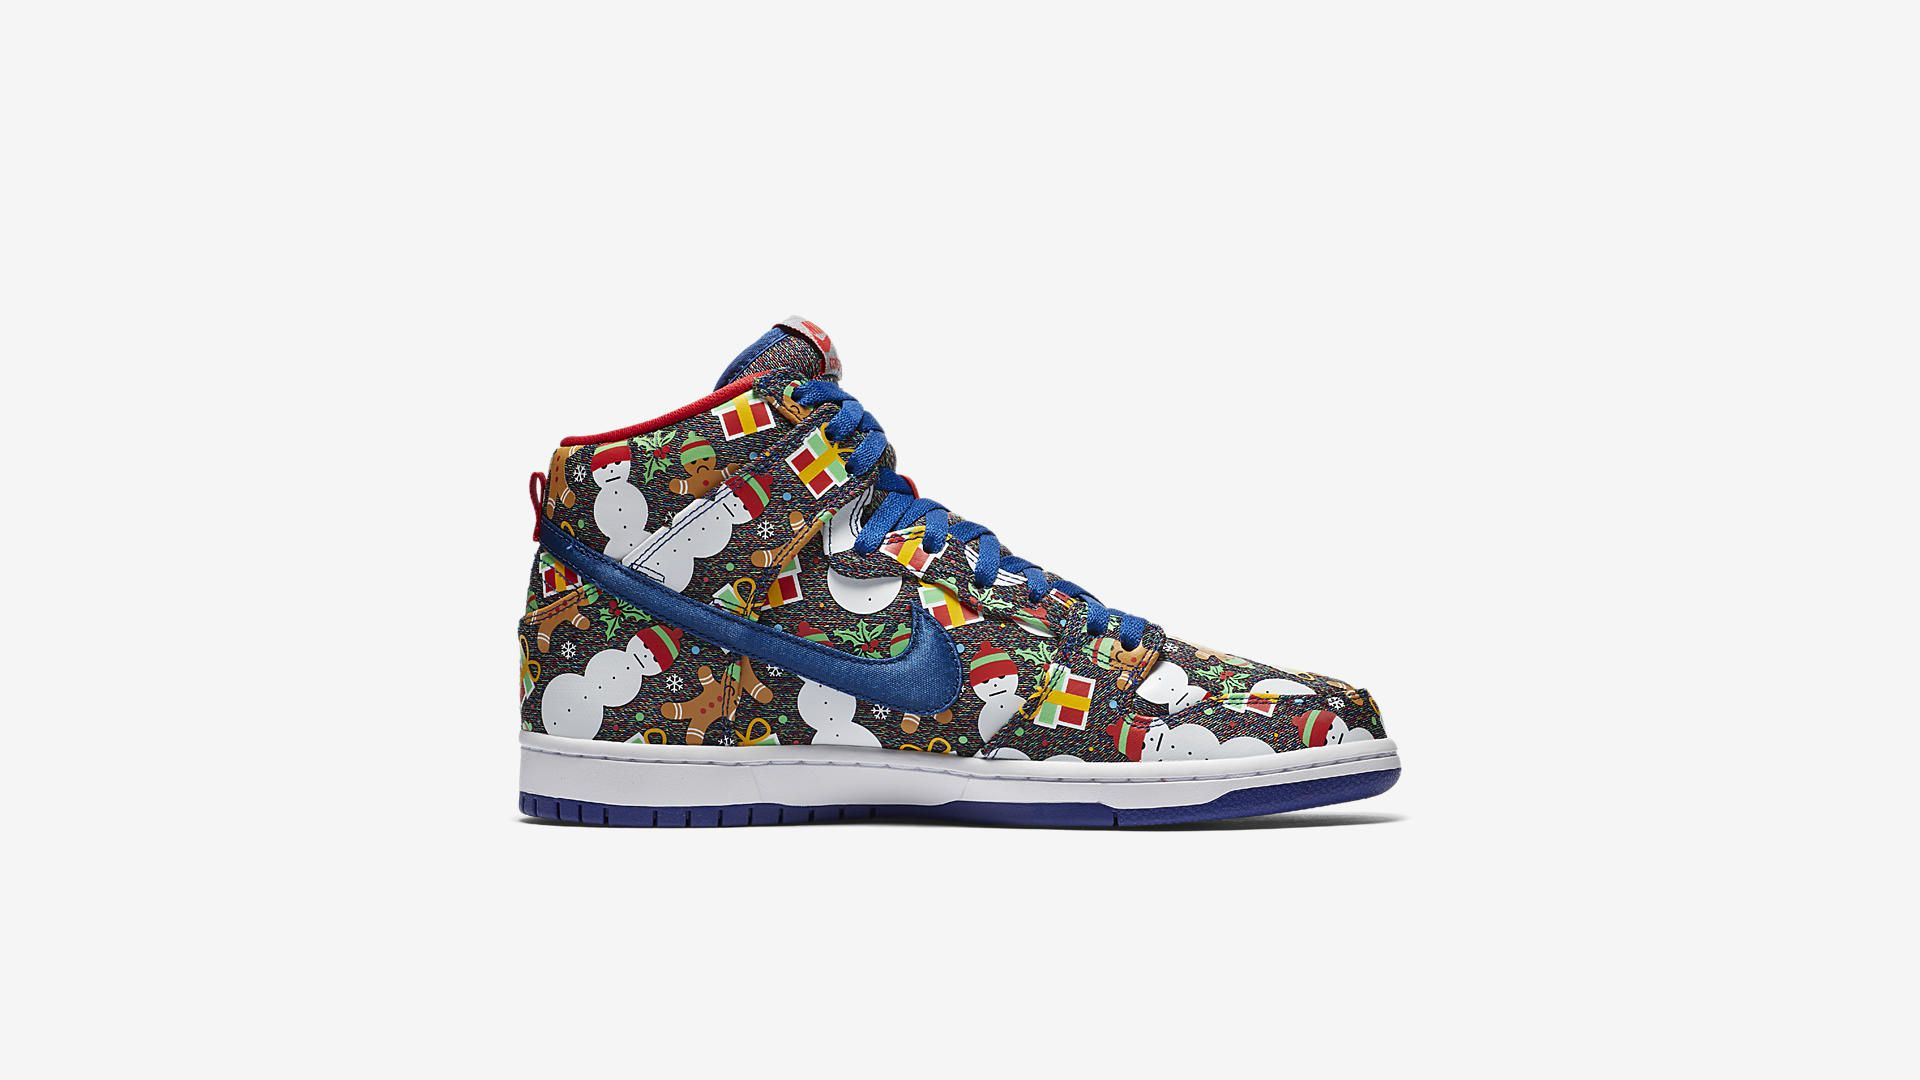 1a9101dc03ea Concepts x Nike SB Dunk Pro High – Ugly Sweater